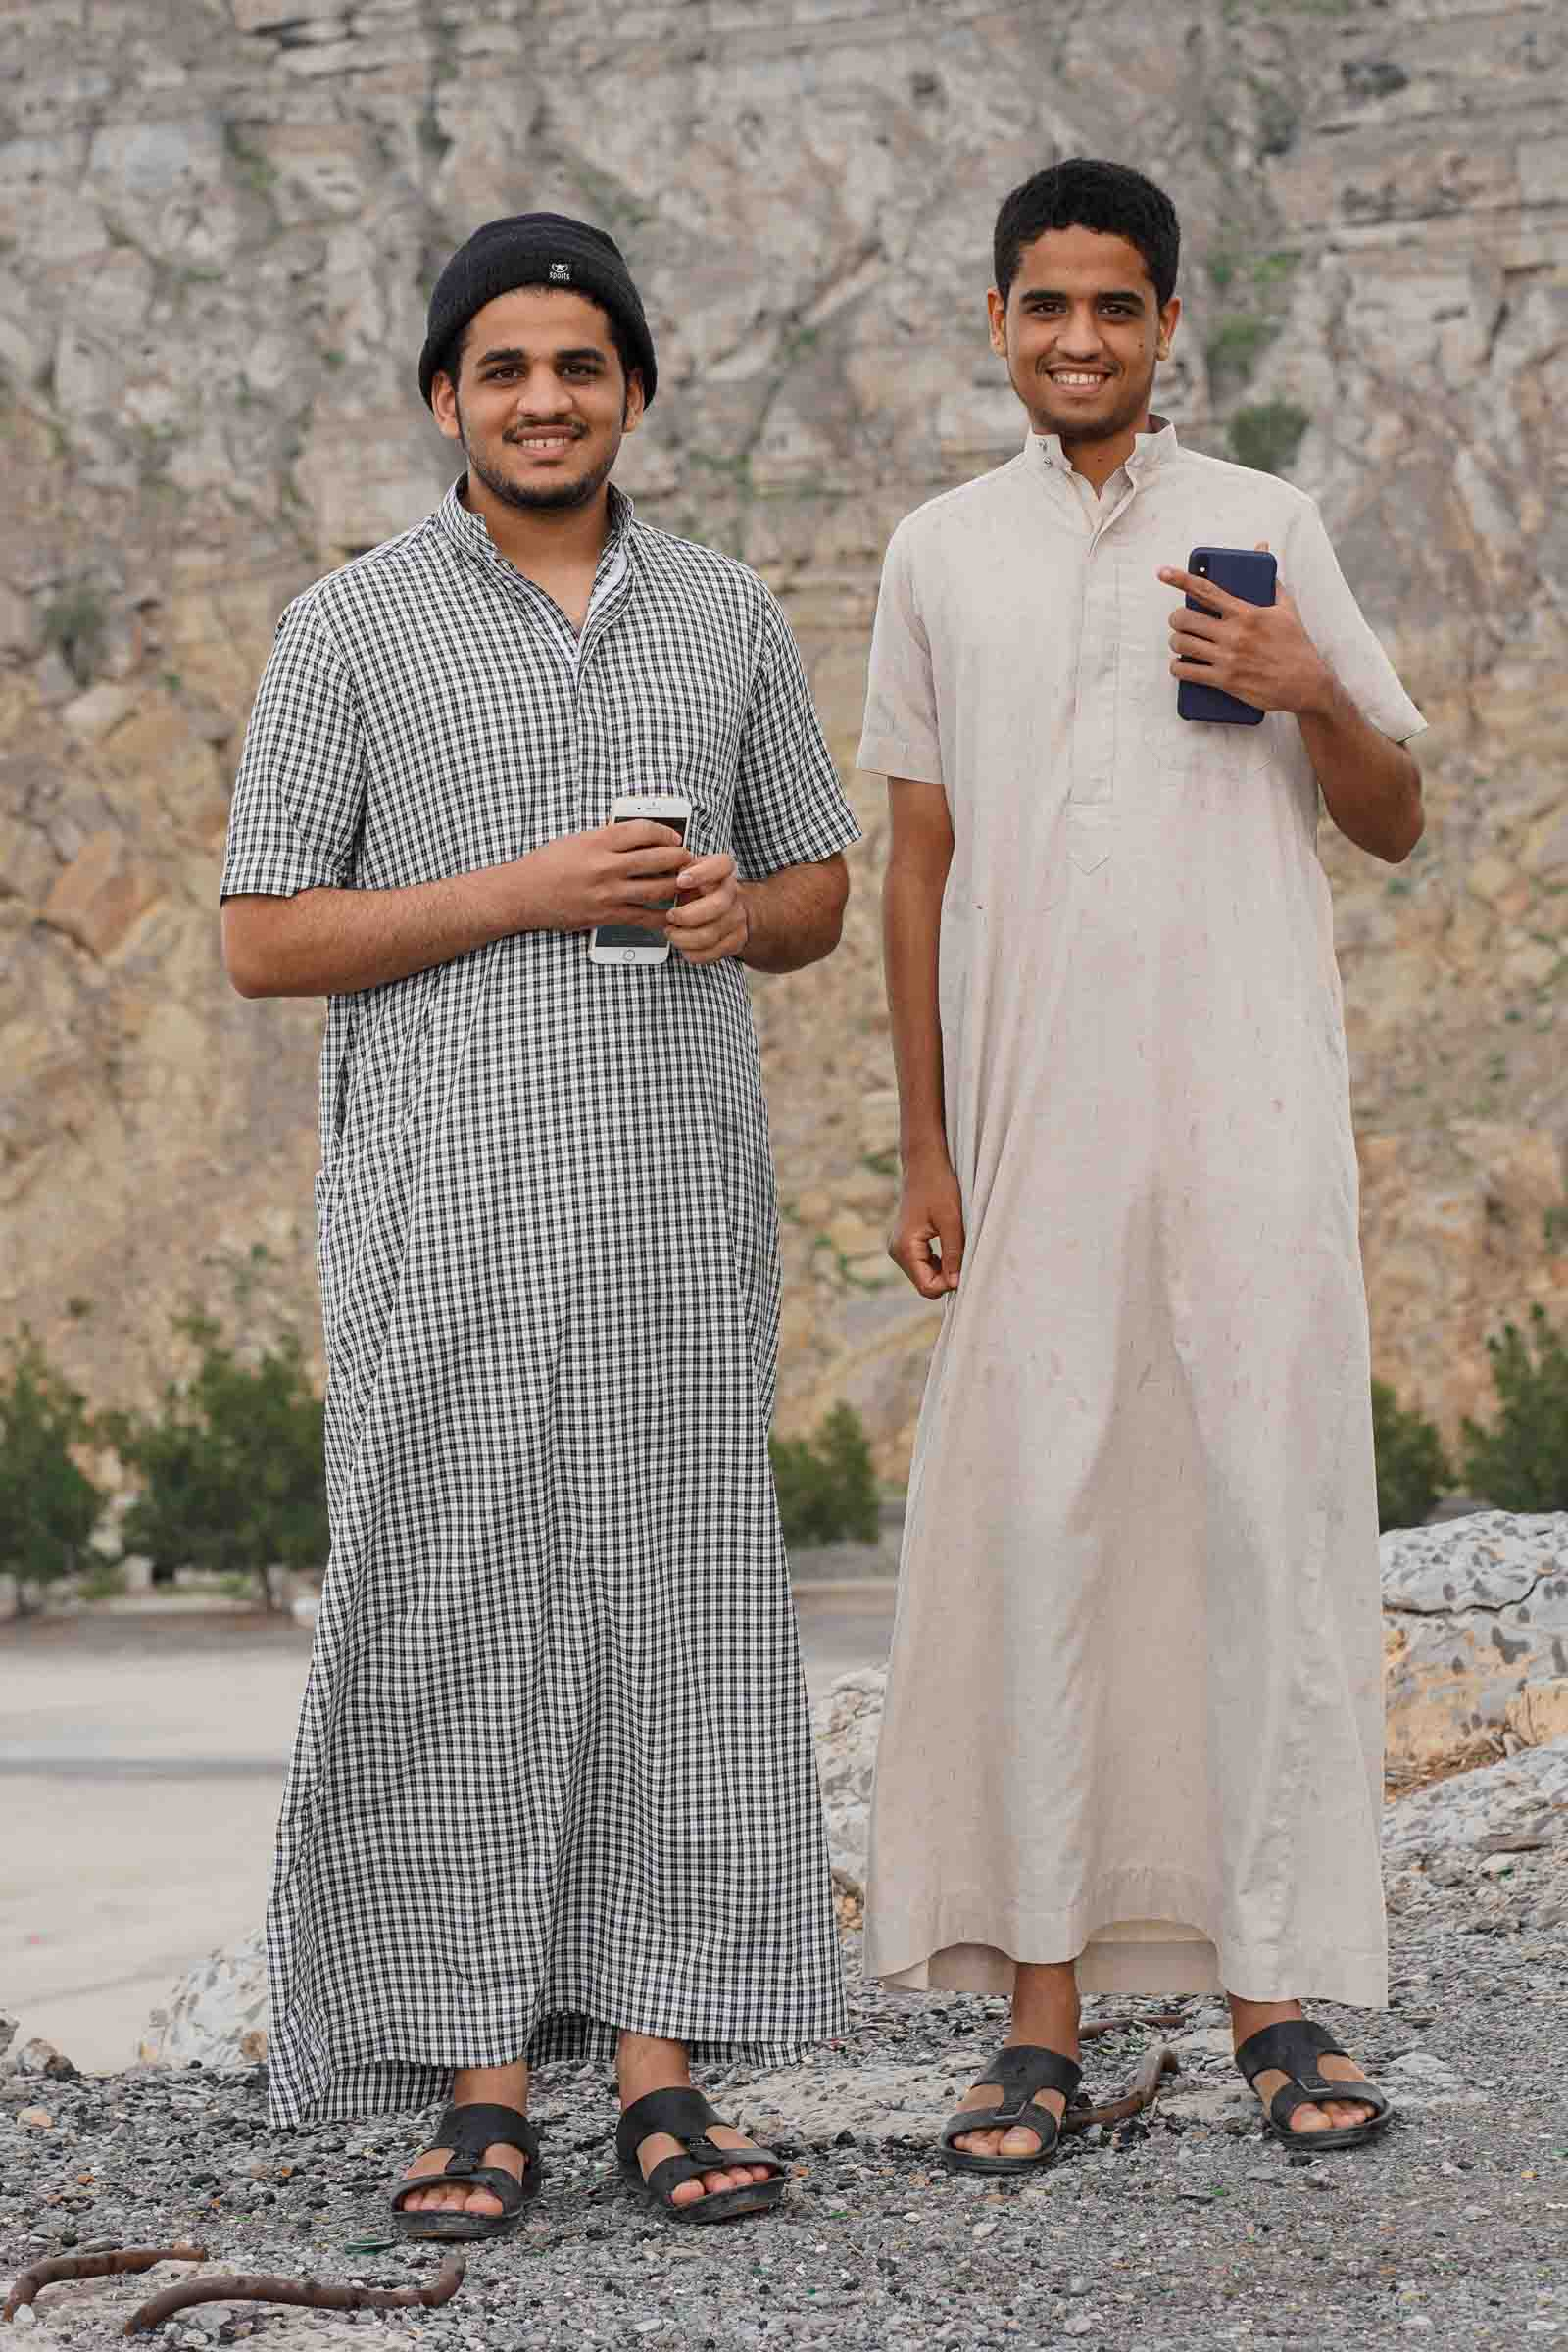 Young Omanis